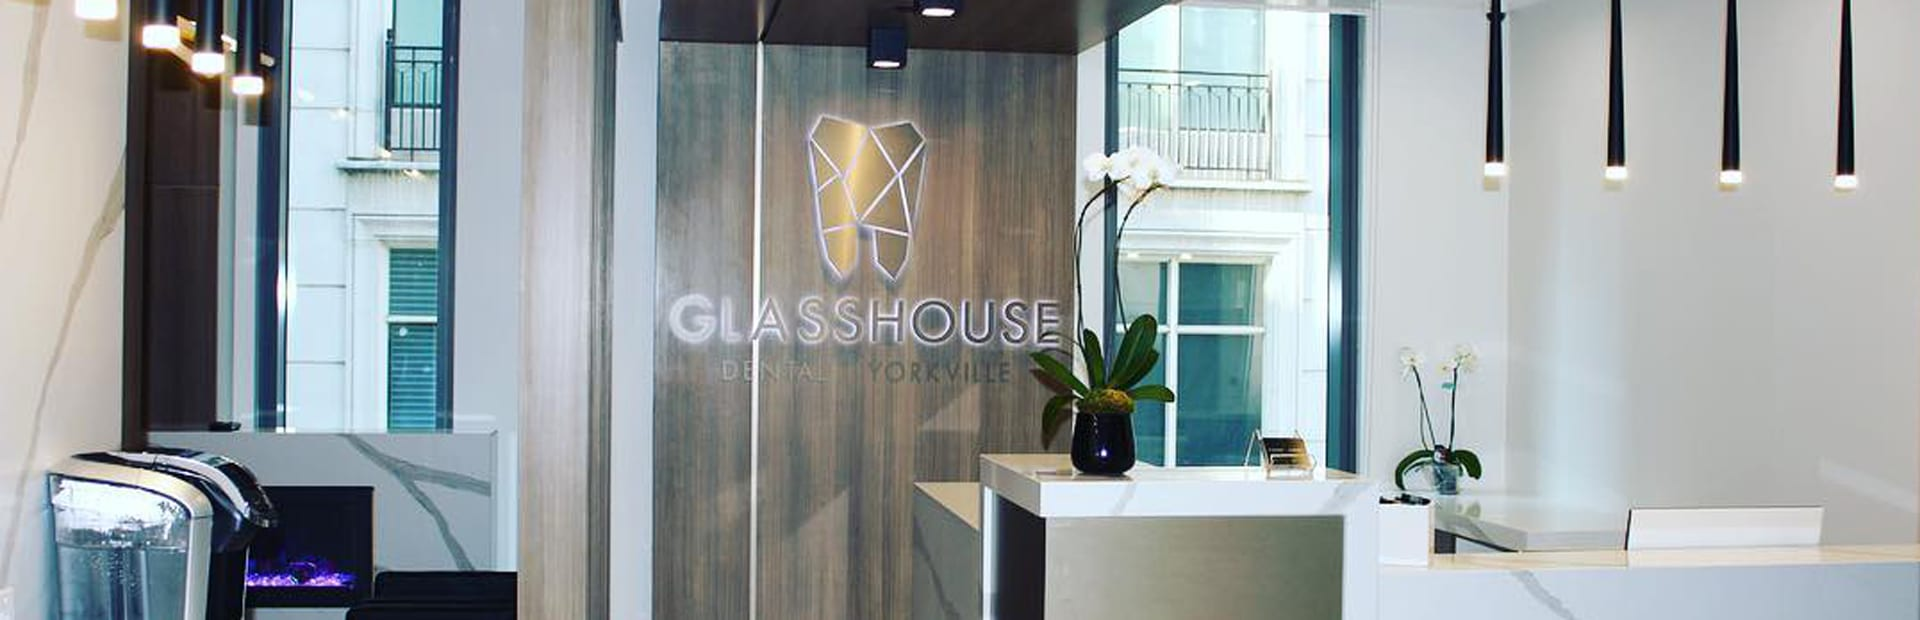 Netflix & Zoom Whiten with Glasshouse Dental